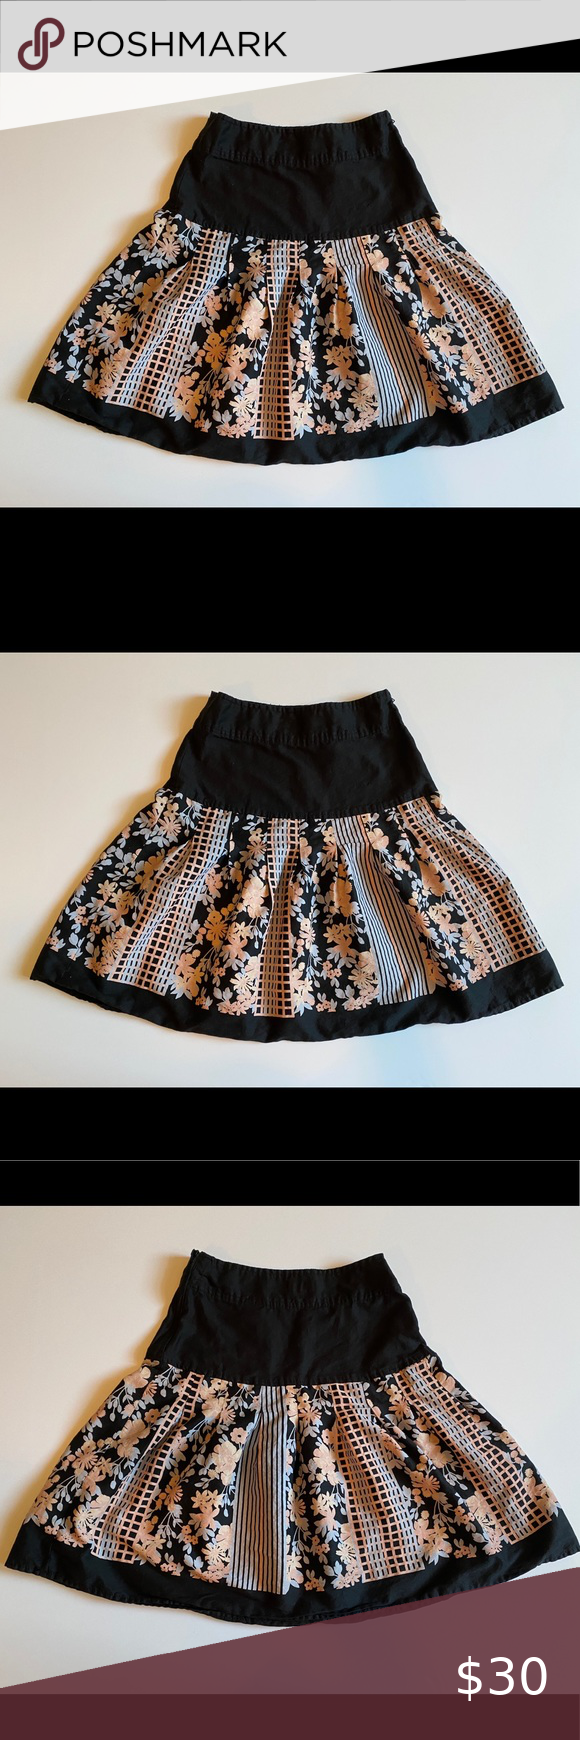 H&M A- Line Skirt Black with Floral Print